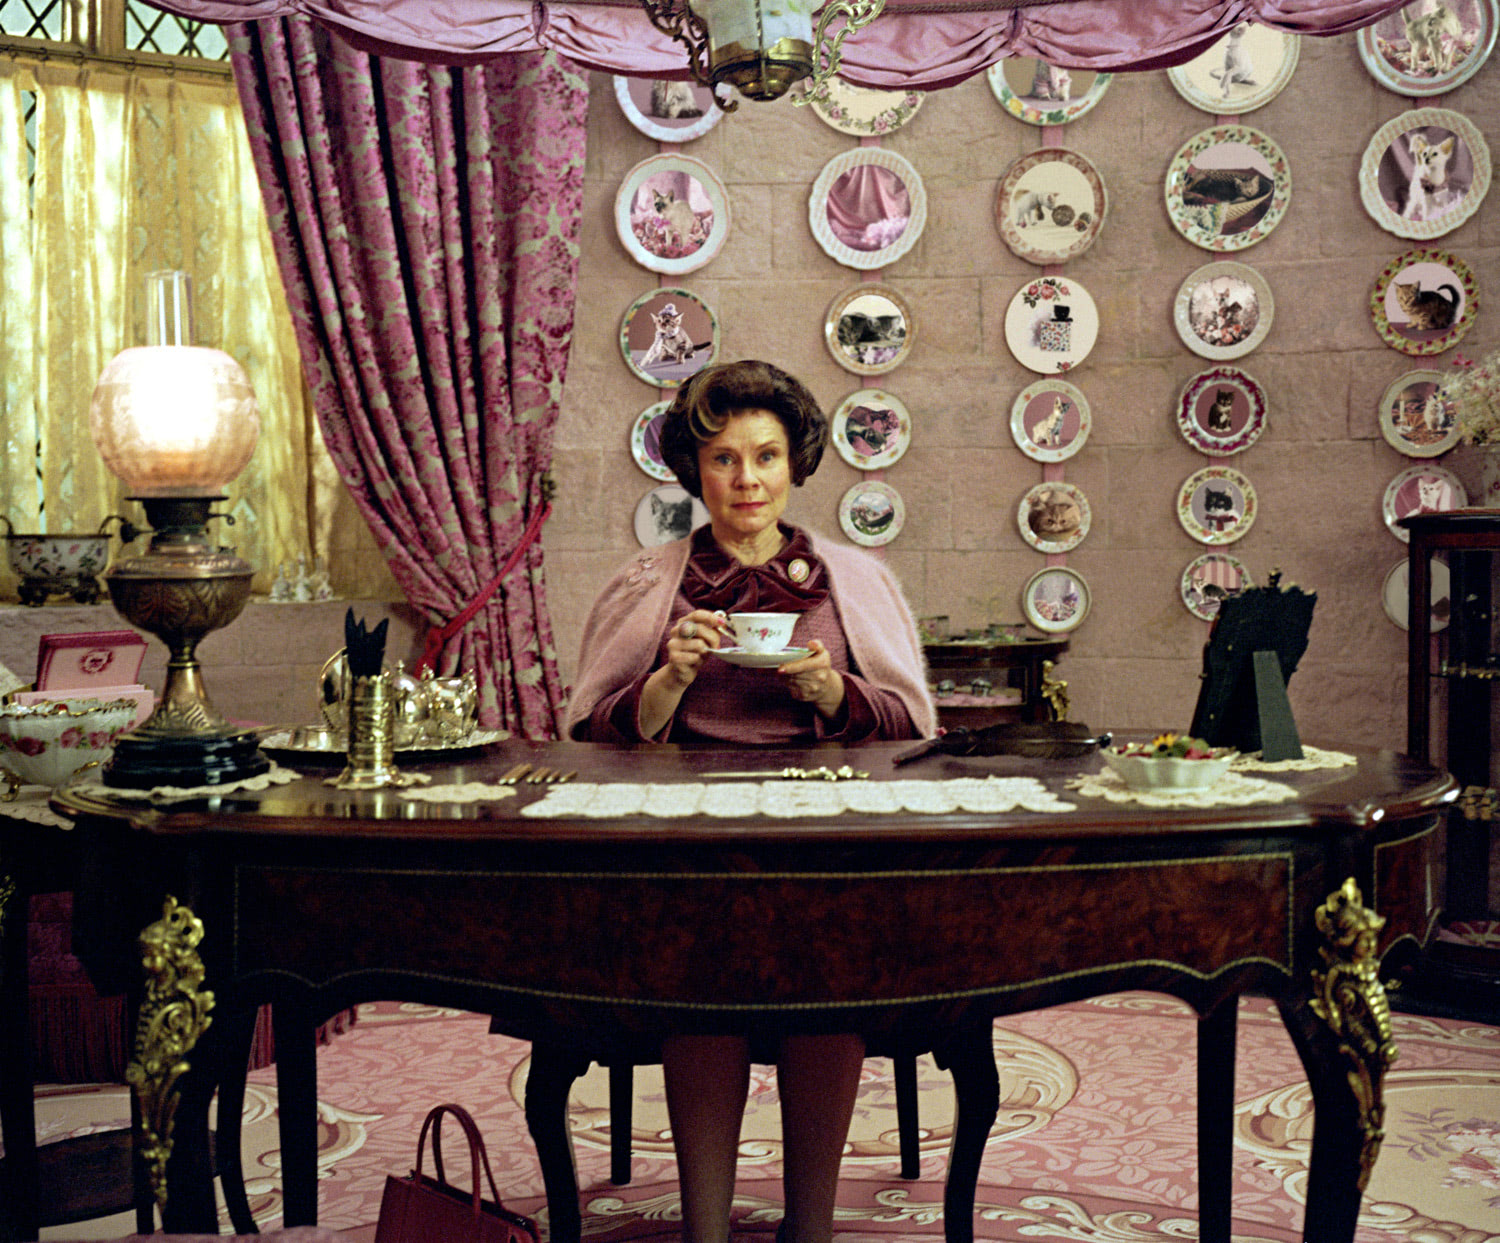 Professor Umbridge in her office